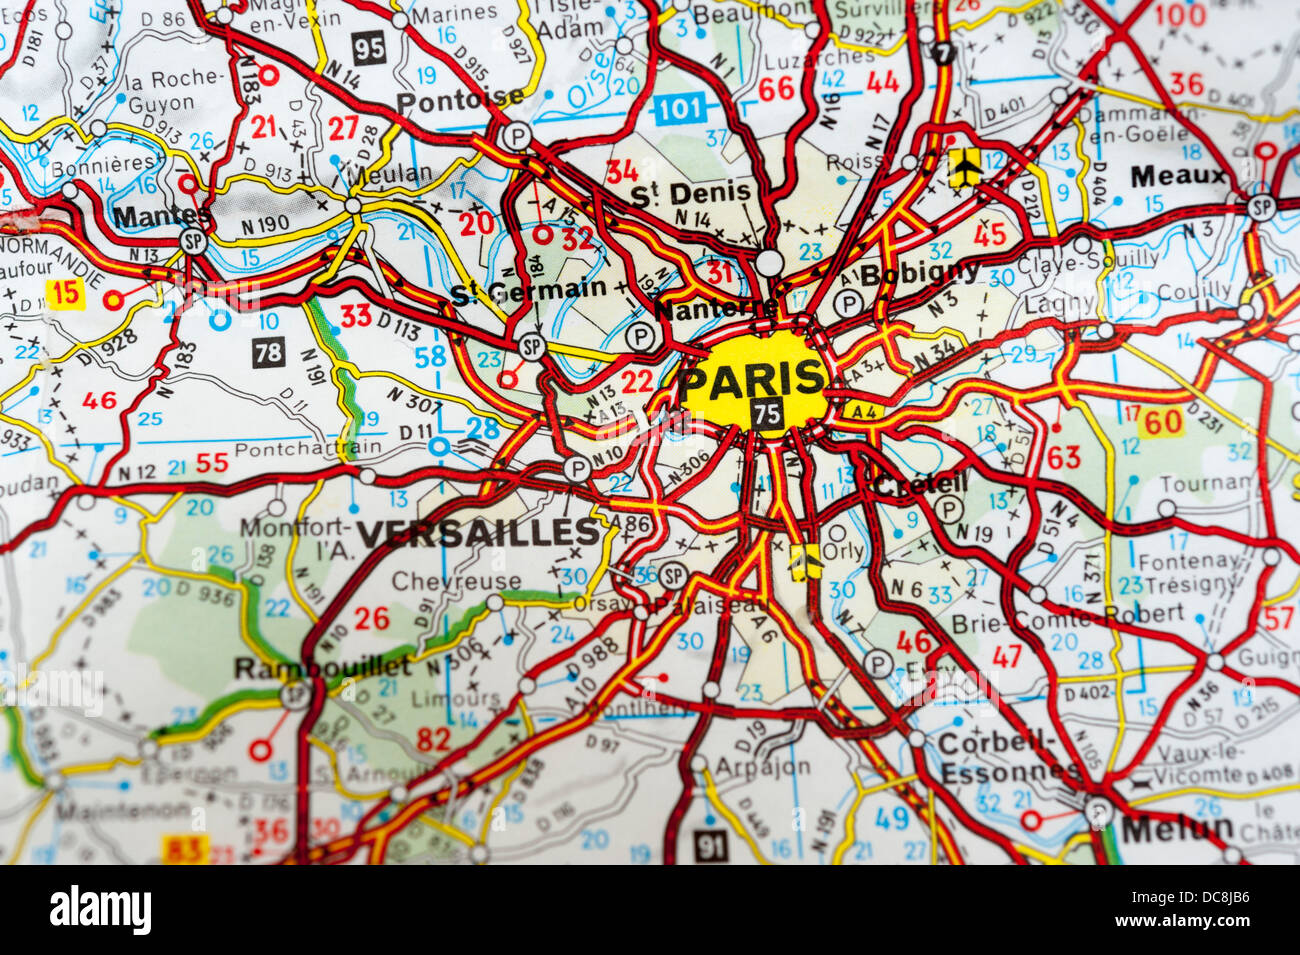 map of paris and surrounding areas close up